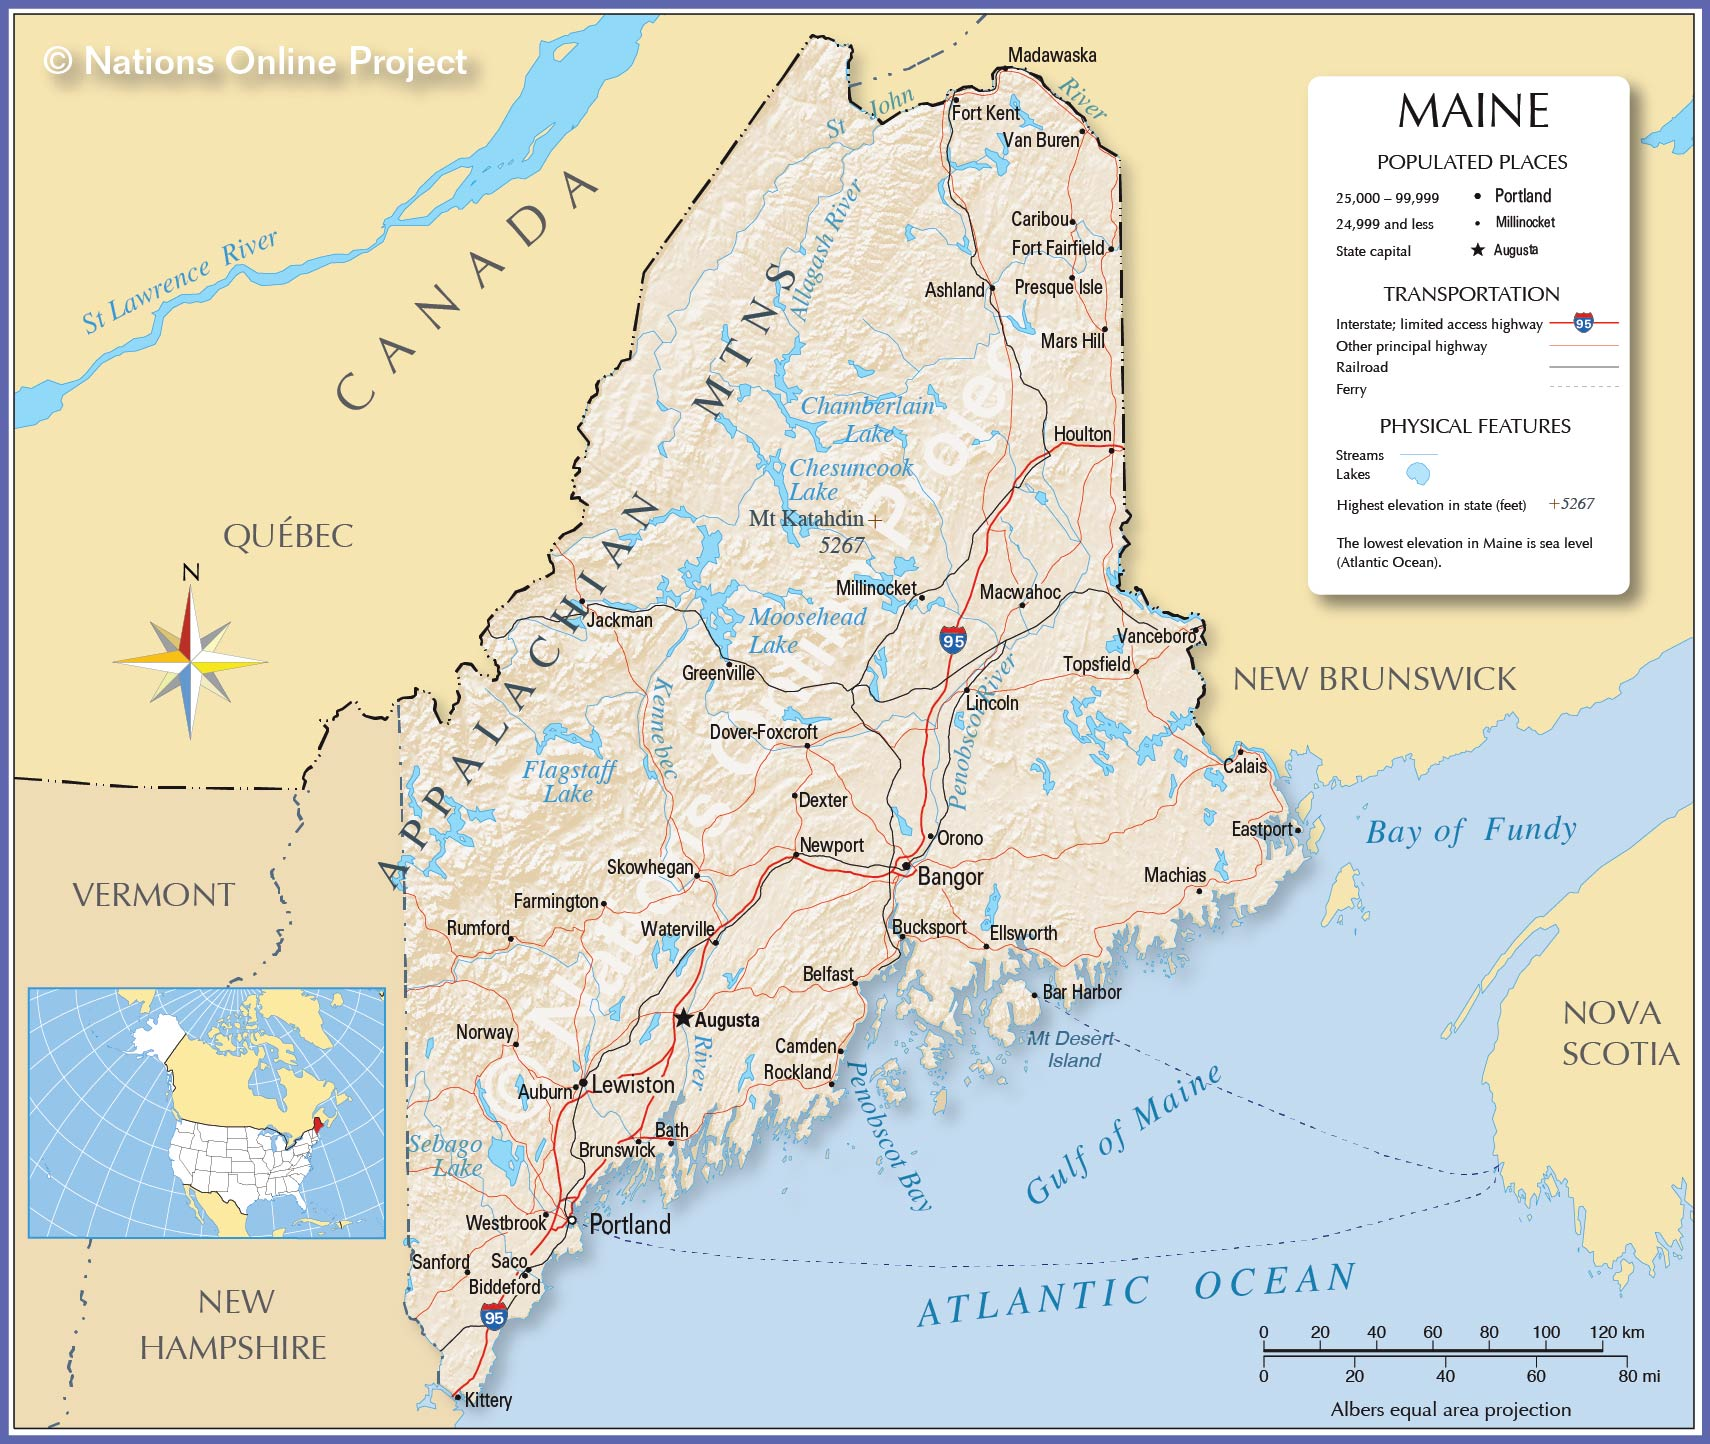 Reference Map Of Maine USA Nations Online Project - Map of maine usa